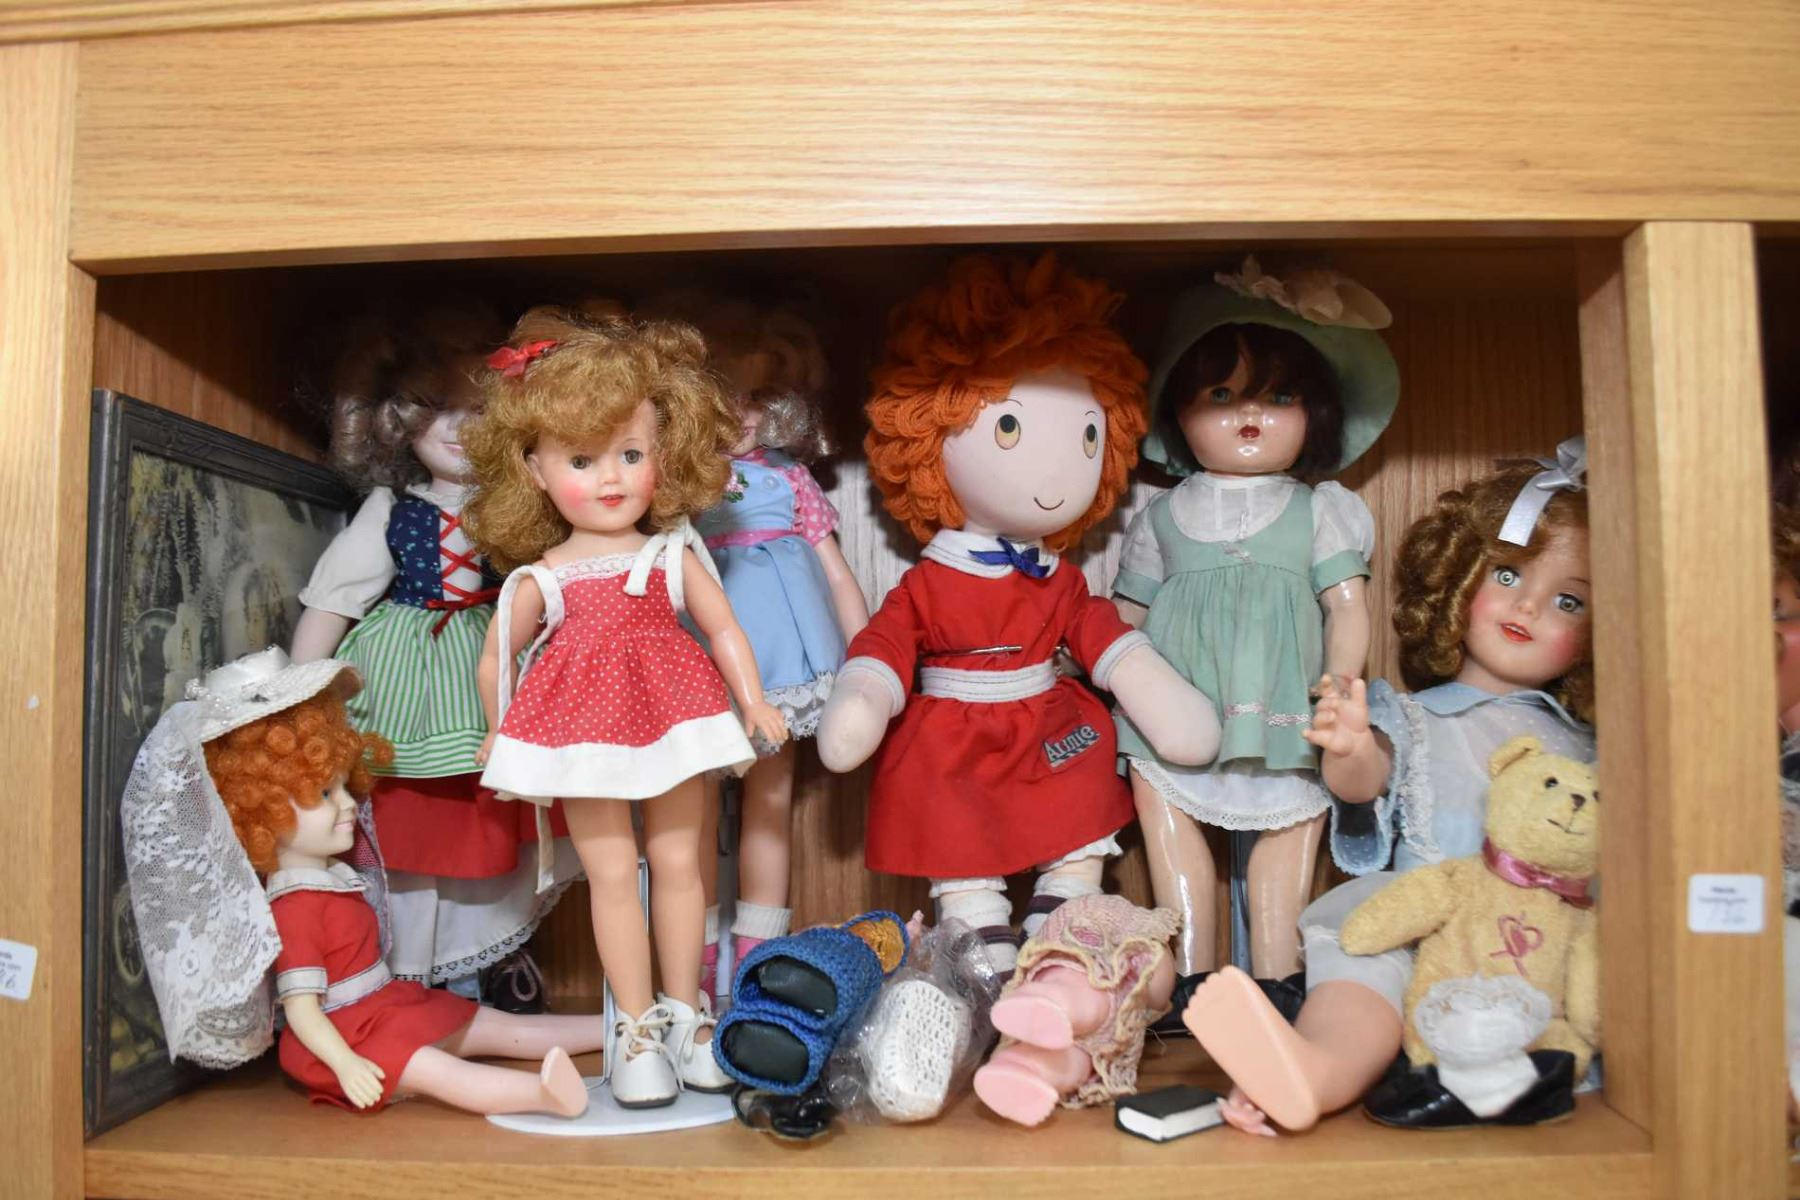 c305b1a44a5a Image 1 : Shelf lot of vintage and collectible dolls including Shirley  Temple, composition, ...